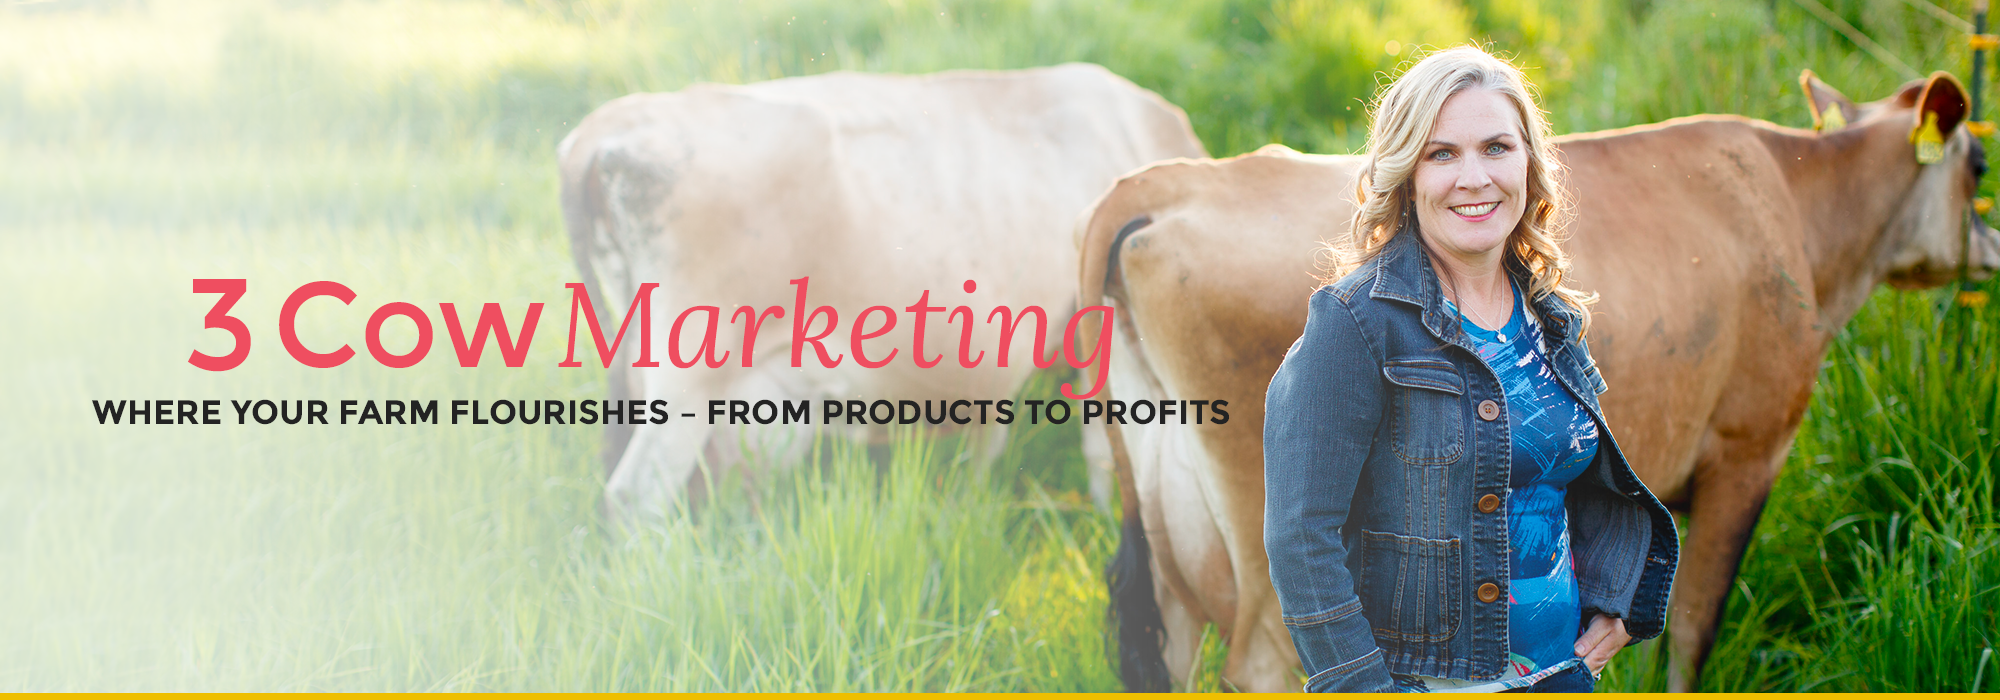 3 Cow Marketing header image